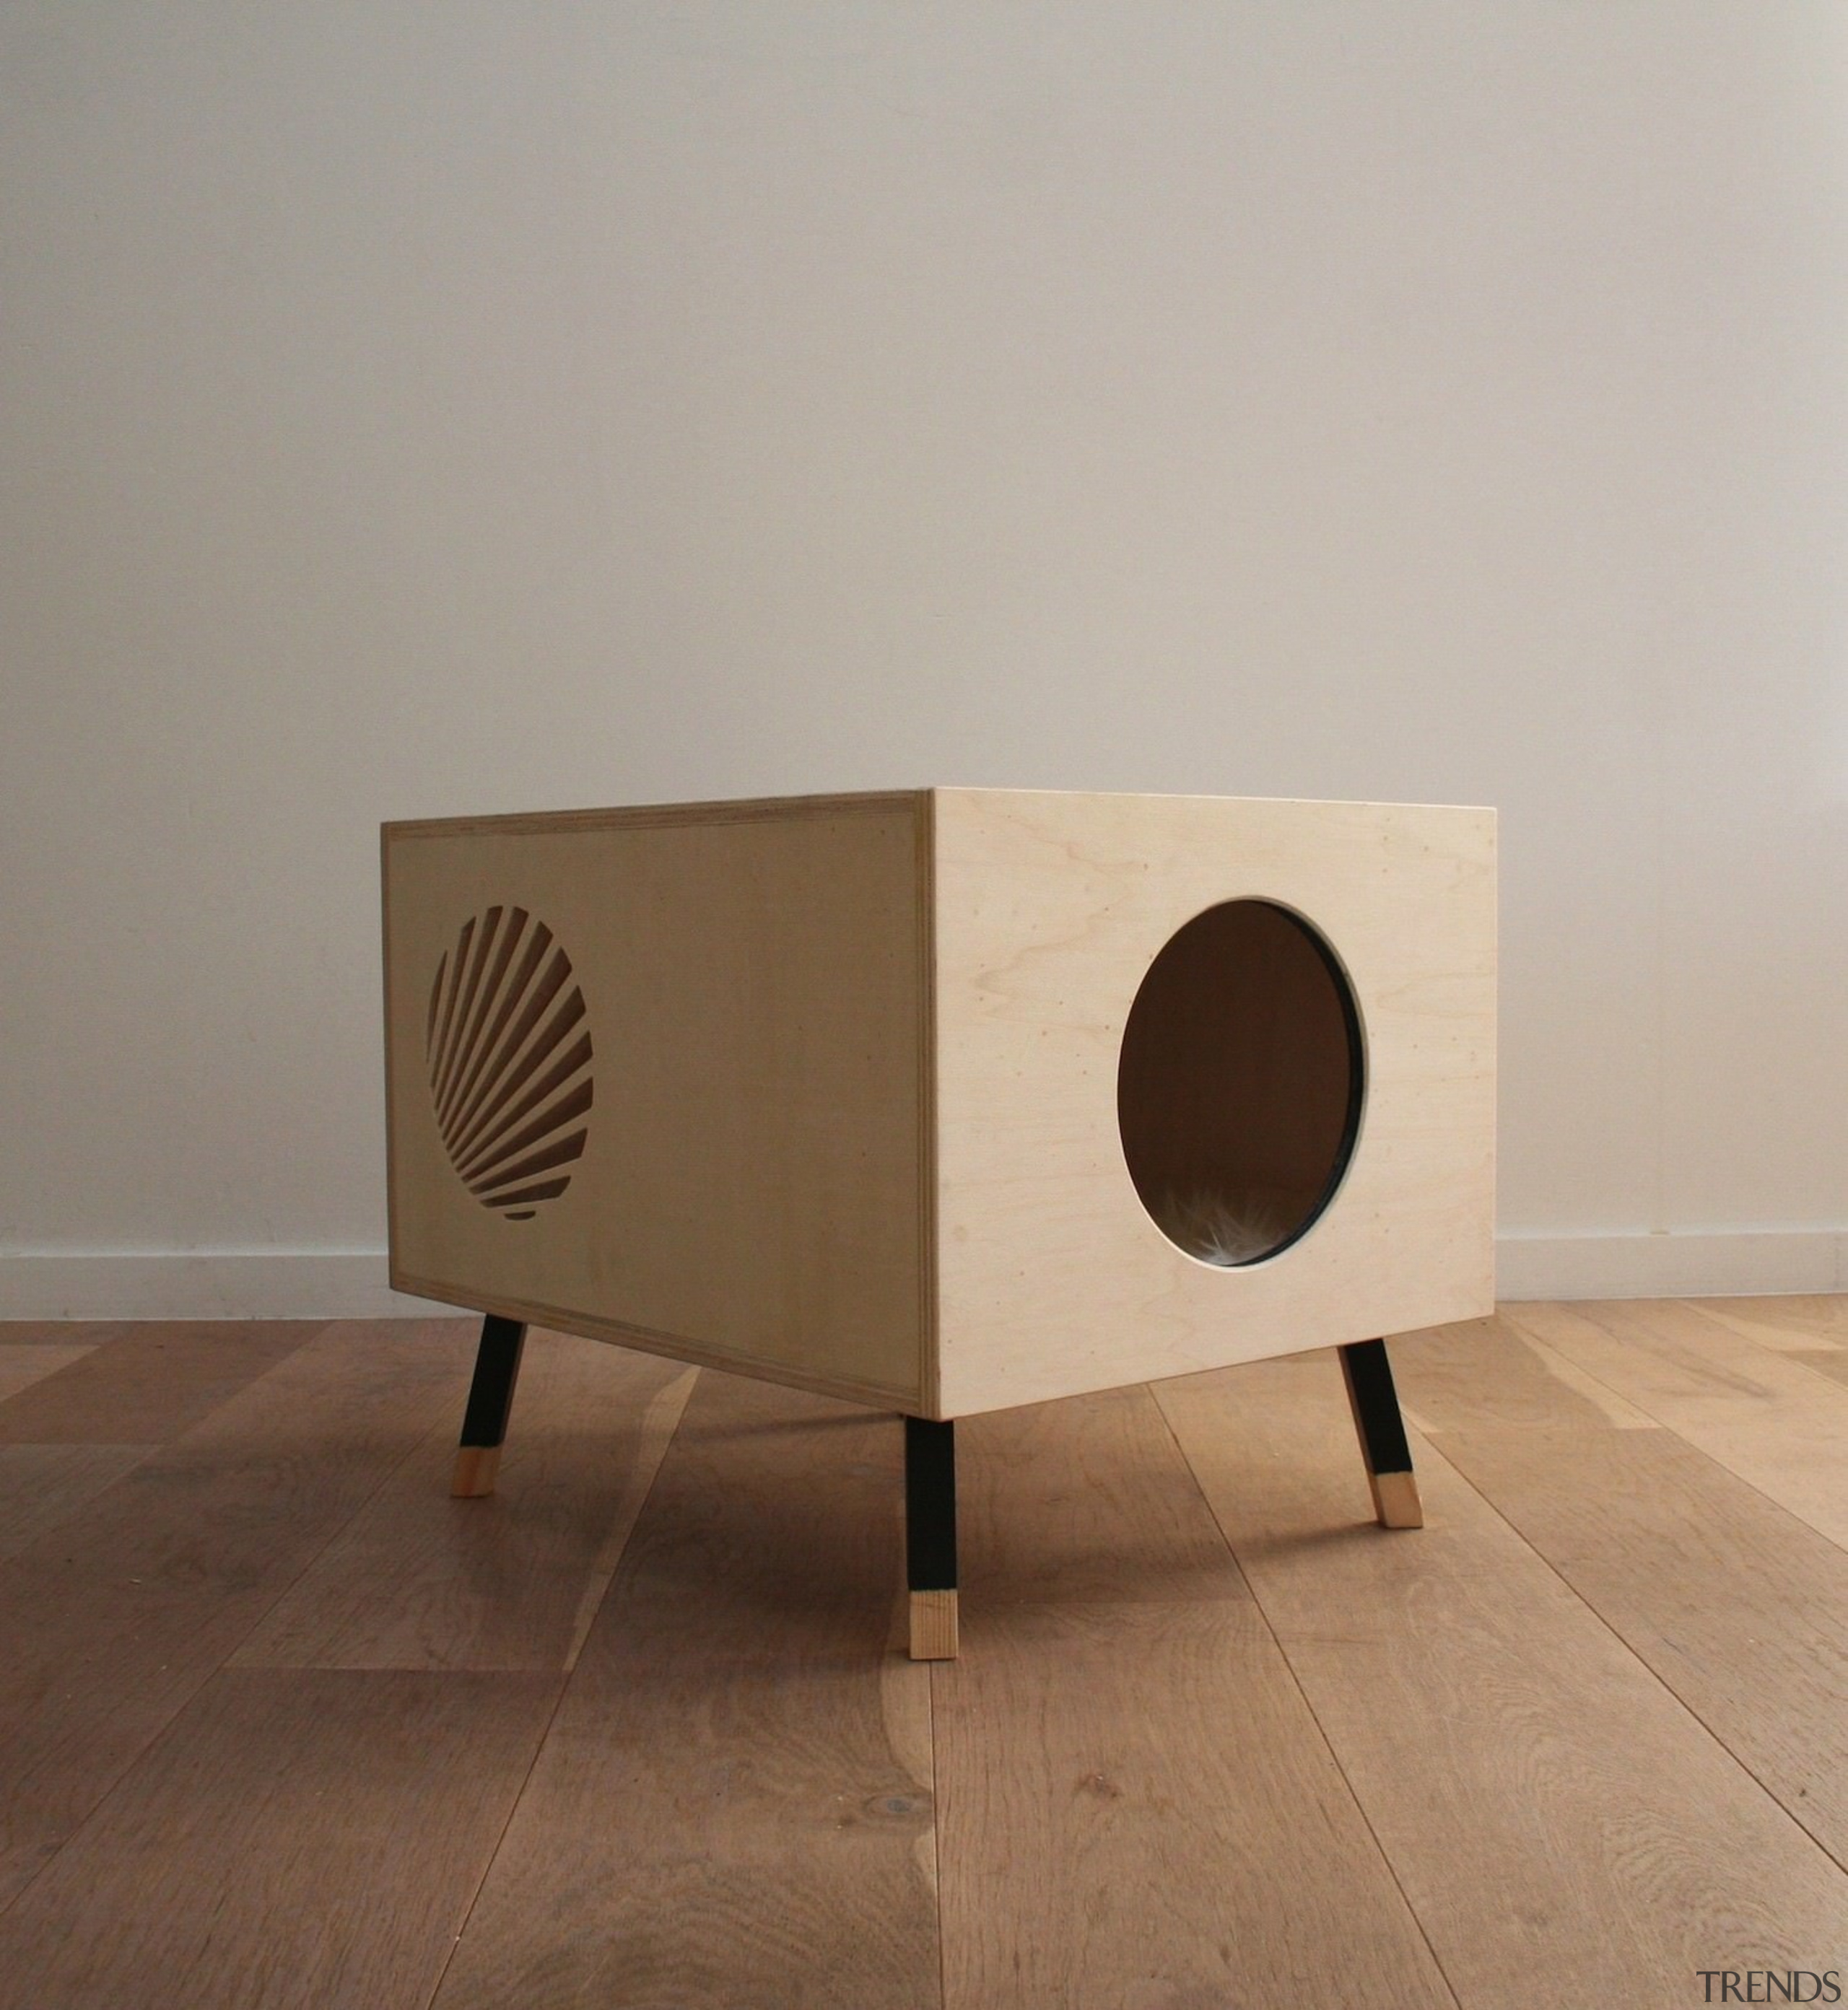 Designed by Krab - The table sits above furniture, plywood, product design, table, gray, brown